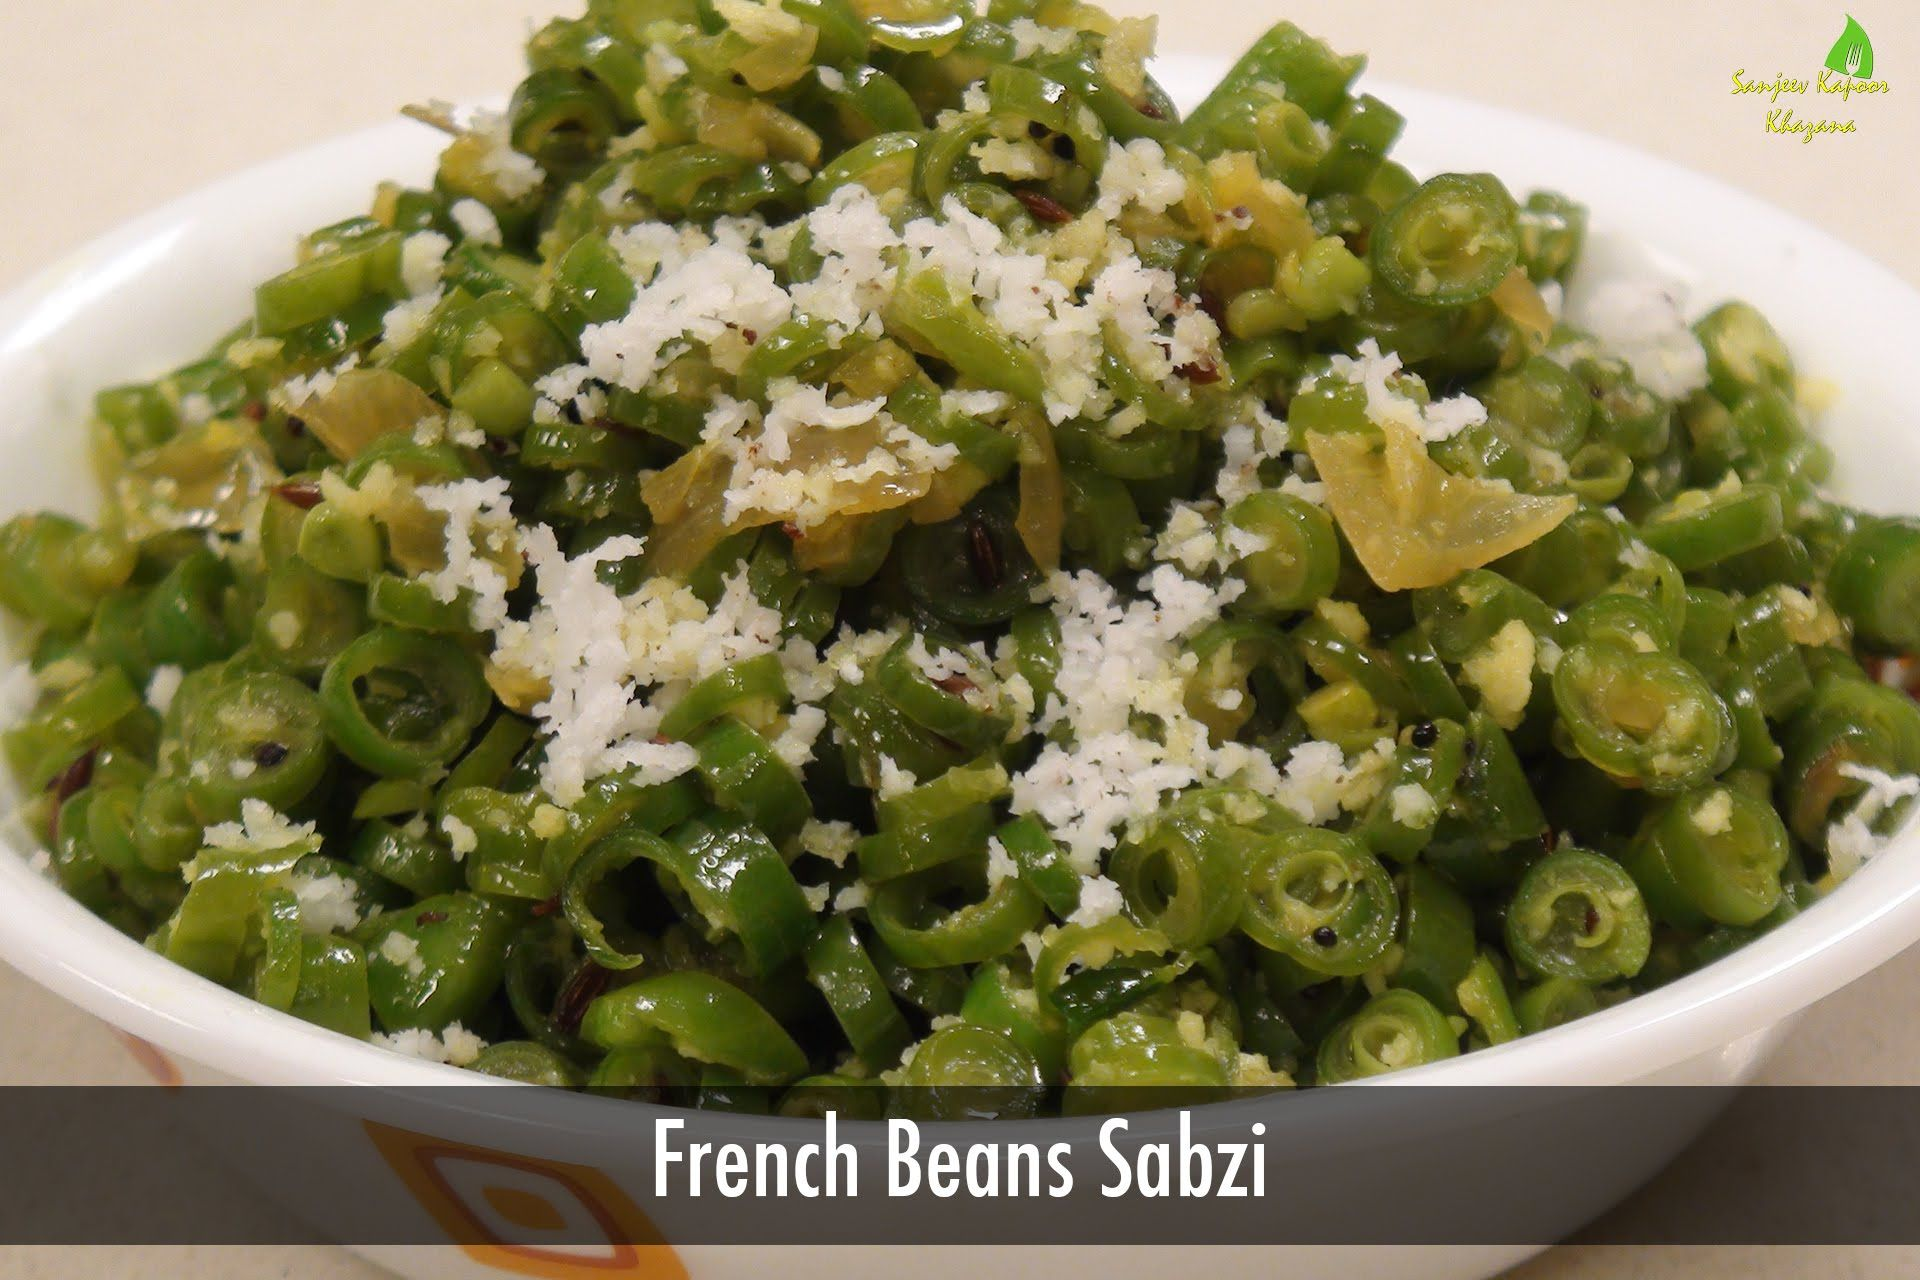 French bean sabzi simple indian cooking sanjeev kapoor khazana french bean sabzi simple indian cooking sanjeev kapoor khazana forumfinder Image collections